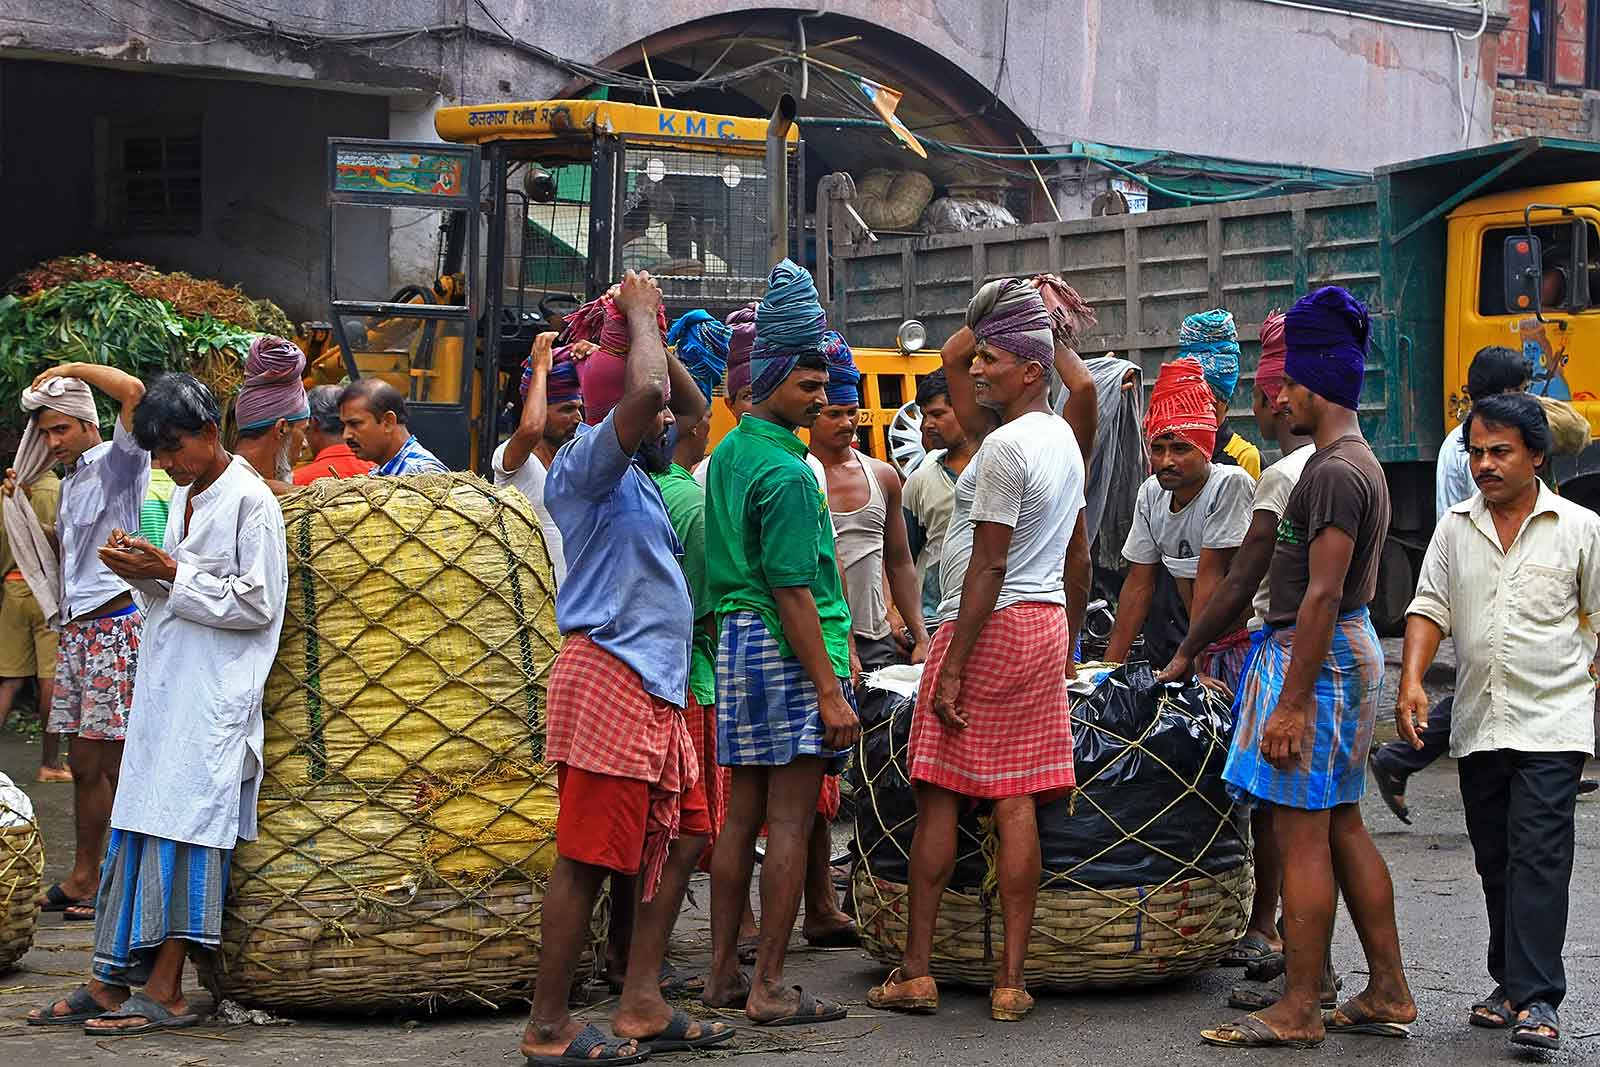 Getting ready to lift up a heavy pile of vegetables in Kolkata, India.